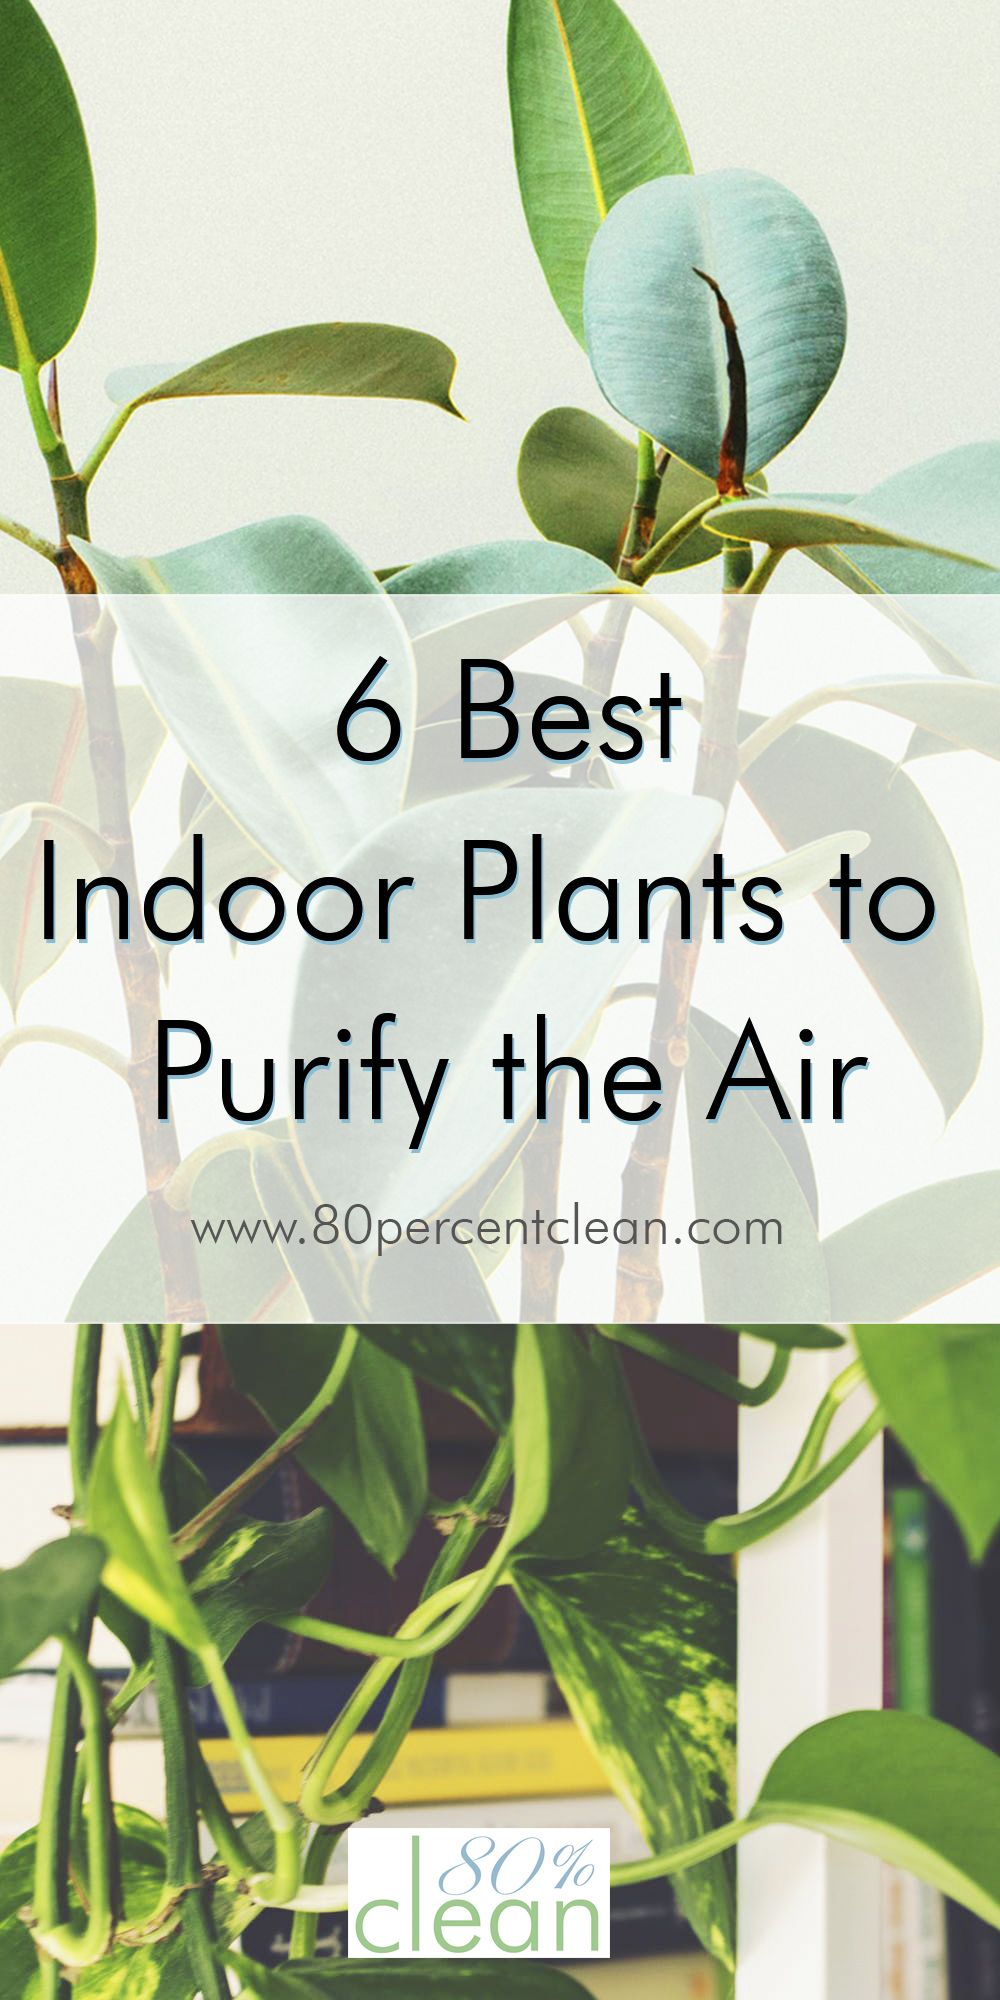 Feeling like your indoor air is a little stale? Need a winter refresh for your home? Try out a few of these indoor plants to purify the air in your home for a taste of spring in the middle of winter, without expensive air purifiers or toxic chemical sprays.